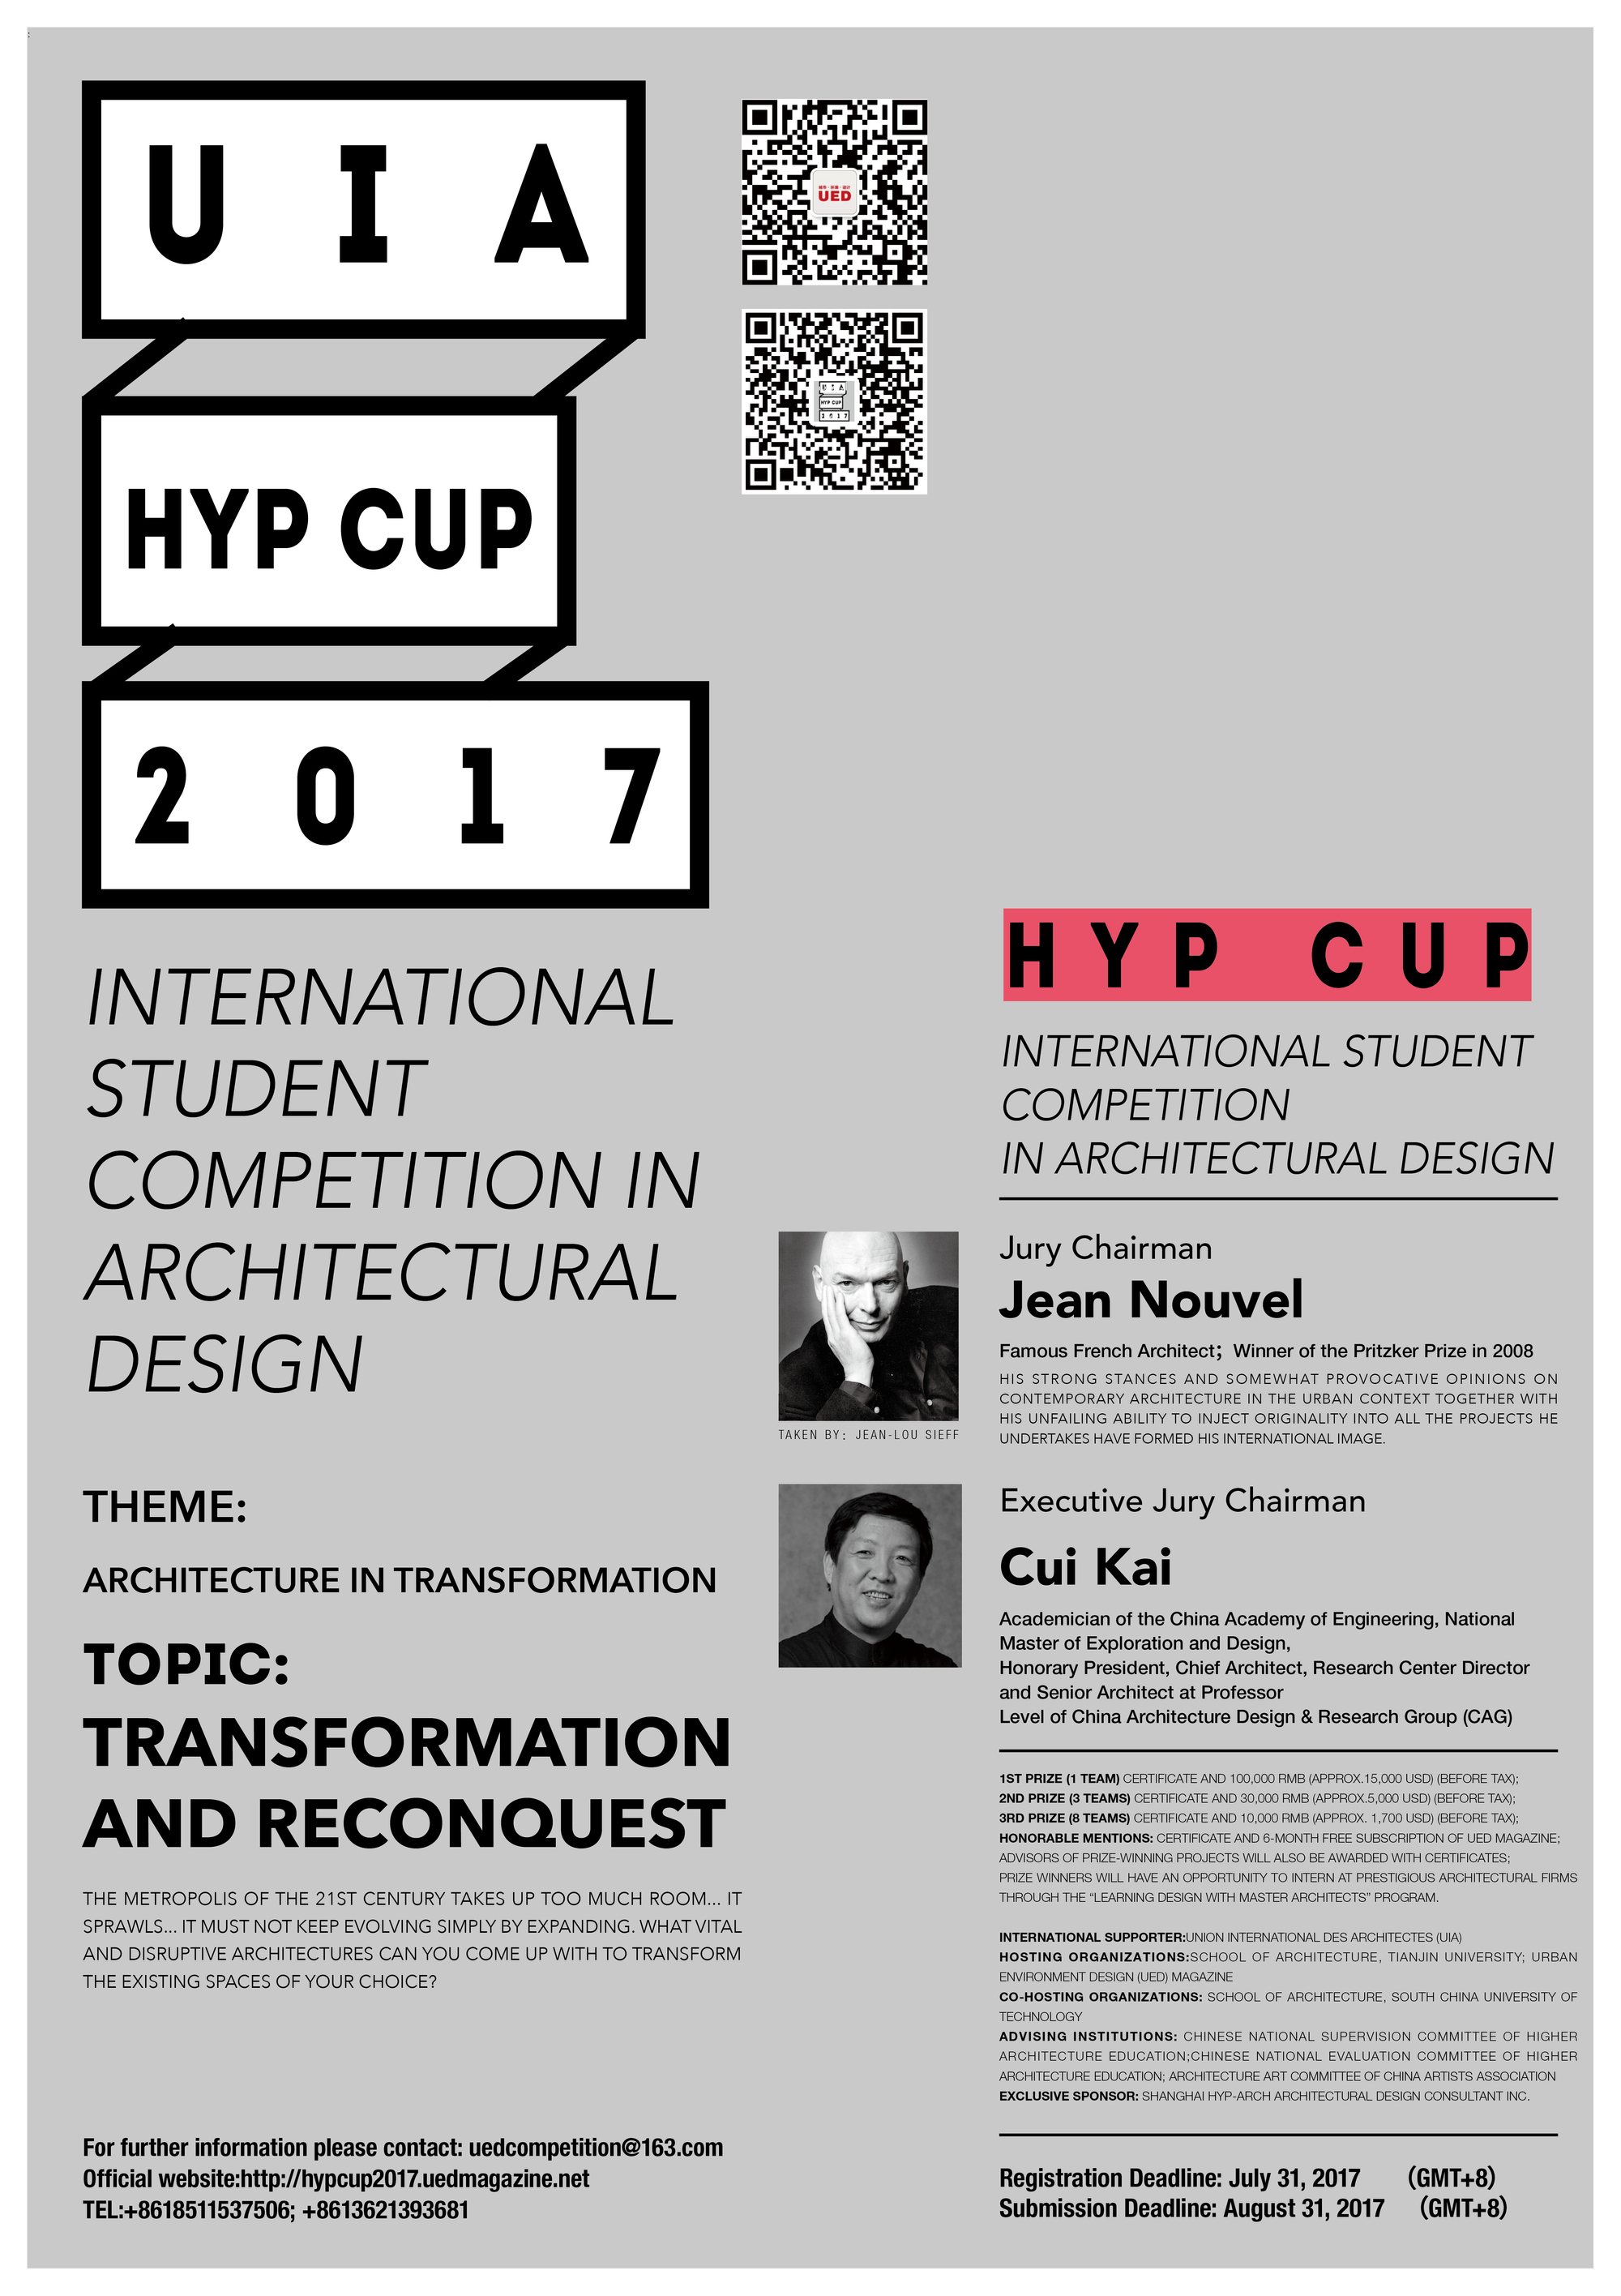 Open Call Uia Hyp Cup International Student Competition